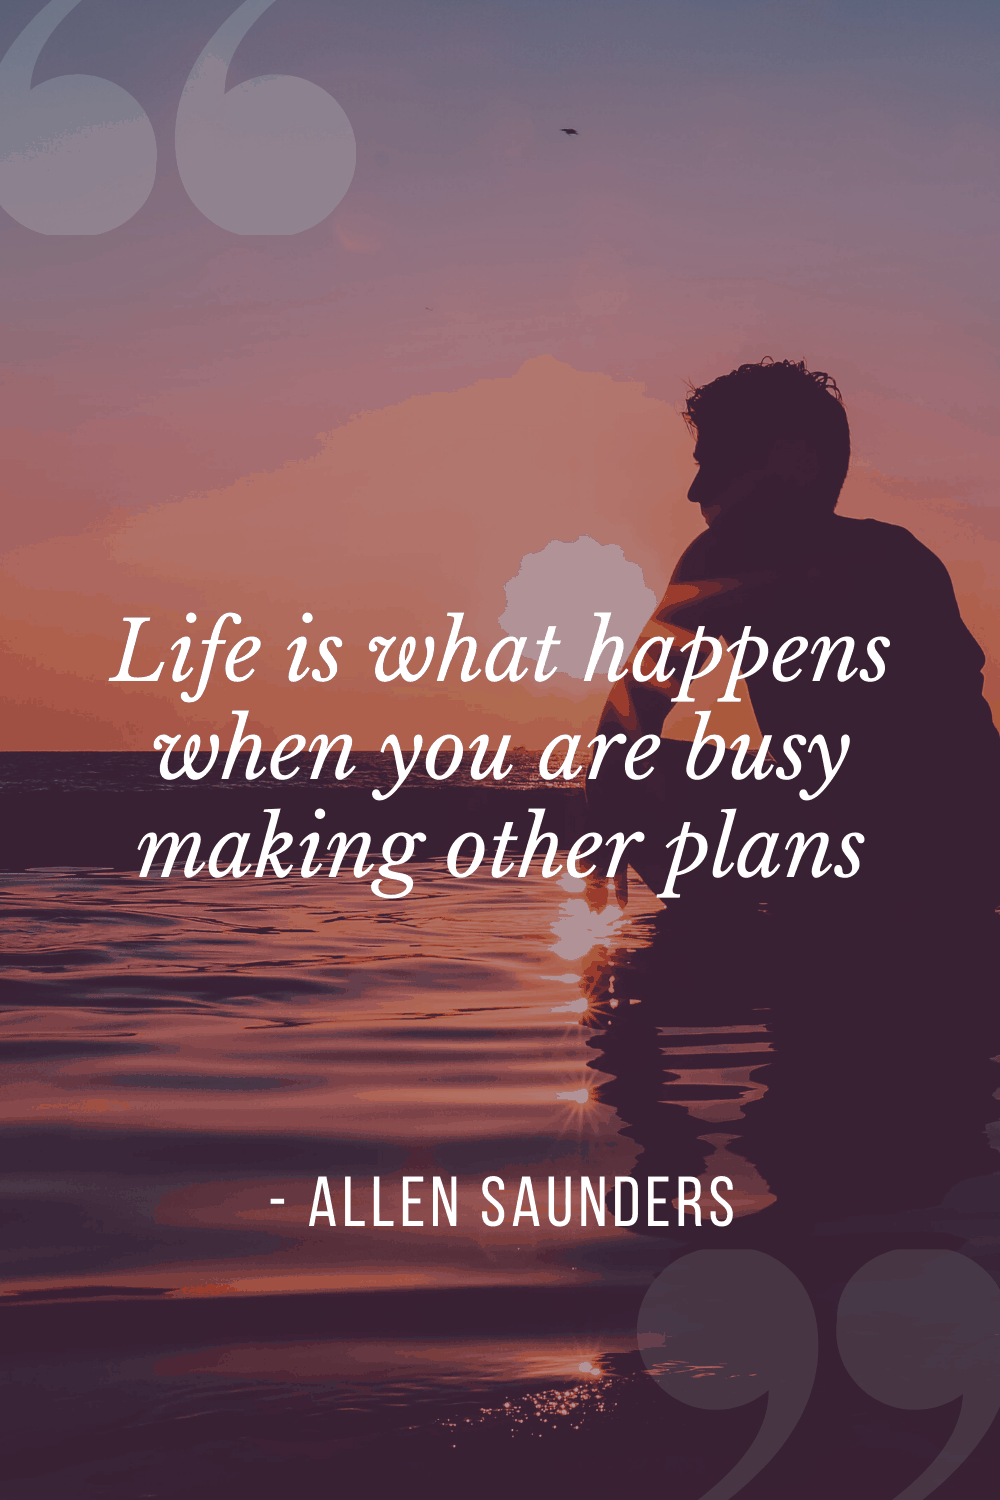 """Life is what happens when you are busy making other plans"", Allen Saunders"